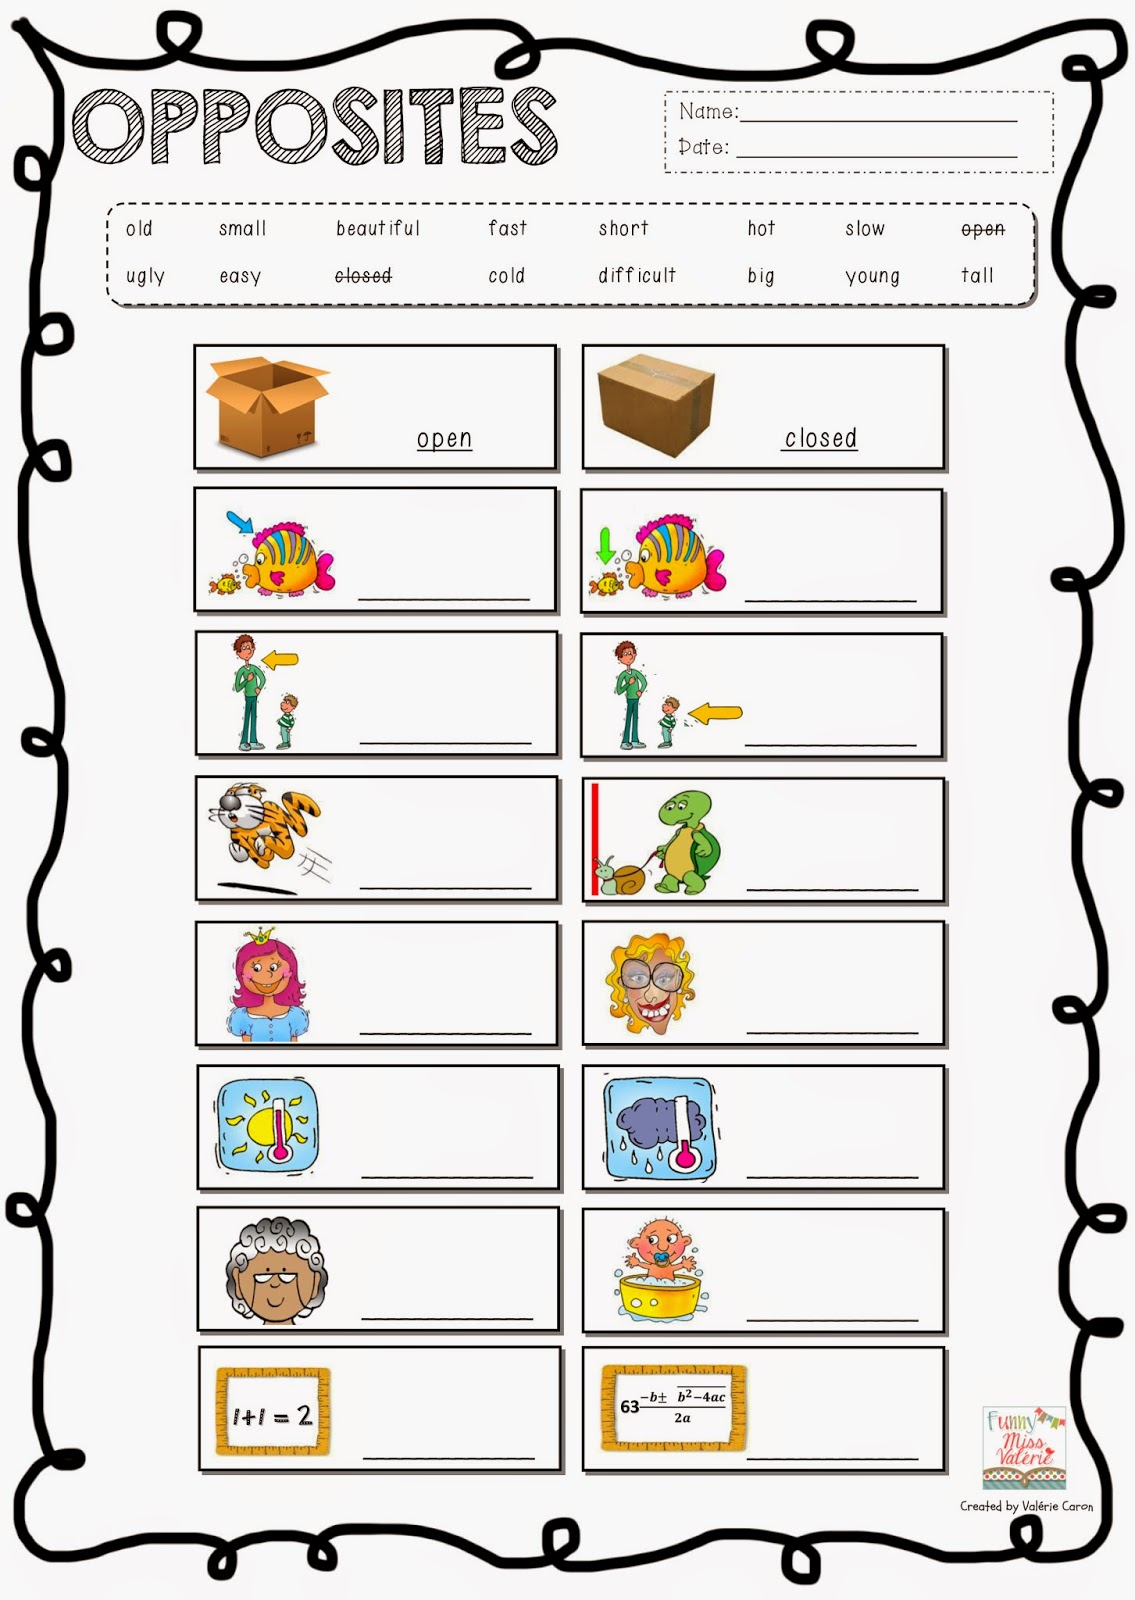 Opposite Adjectives Worksheet